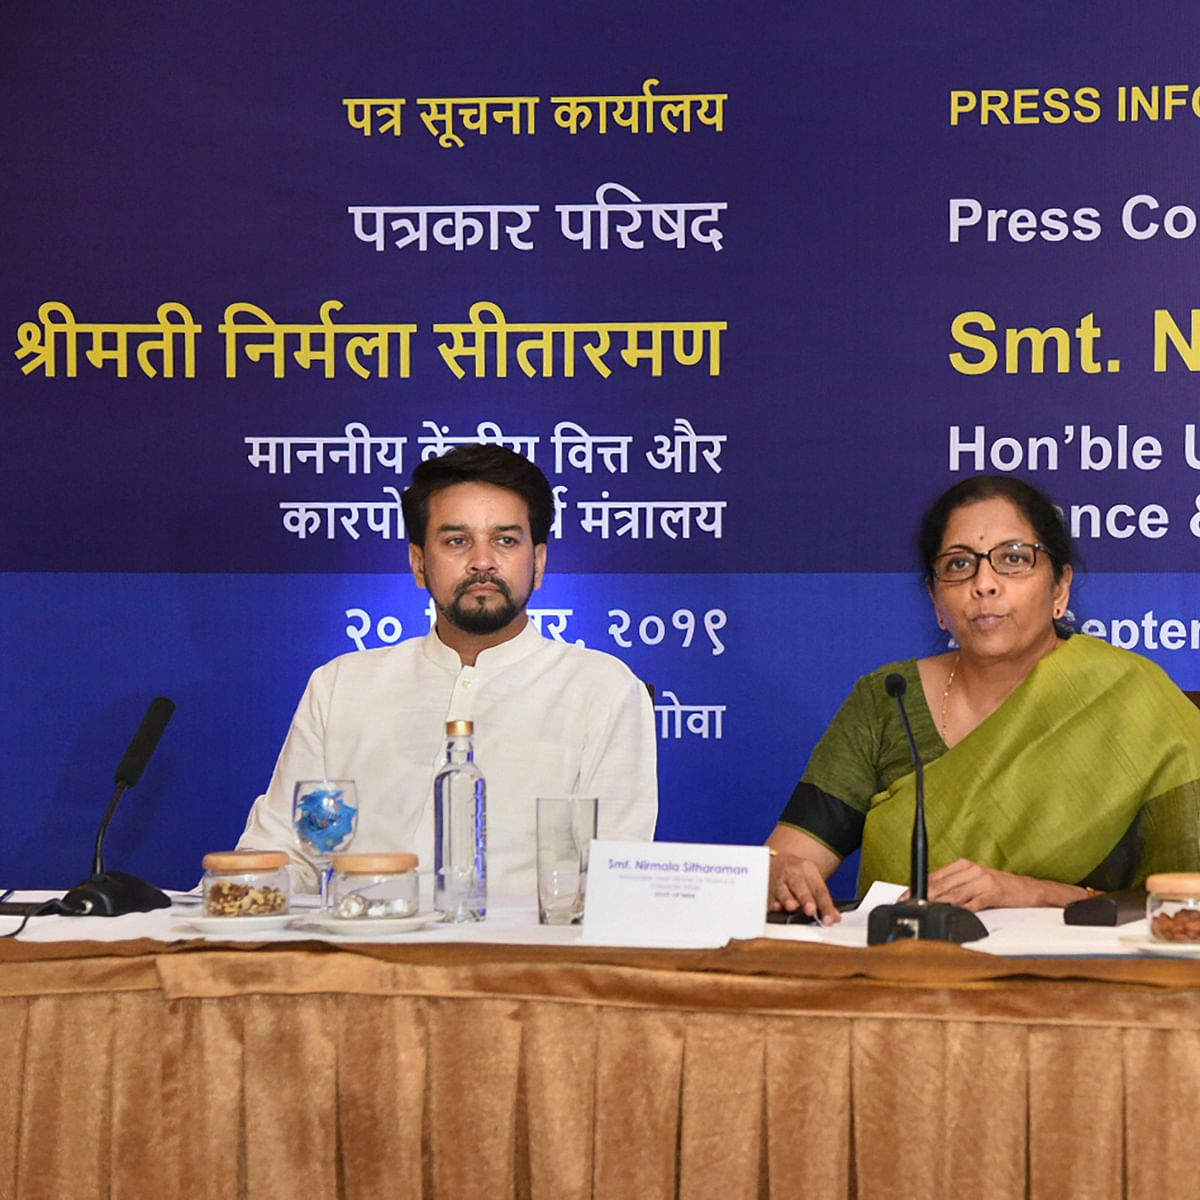 Told PSU banks to pass on interest rate cuts: Anurag Thakur